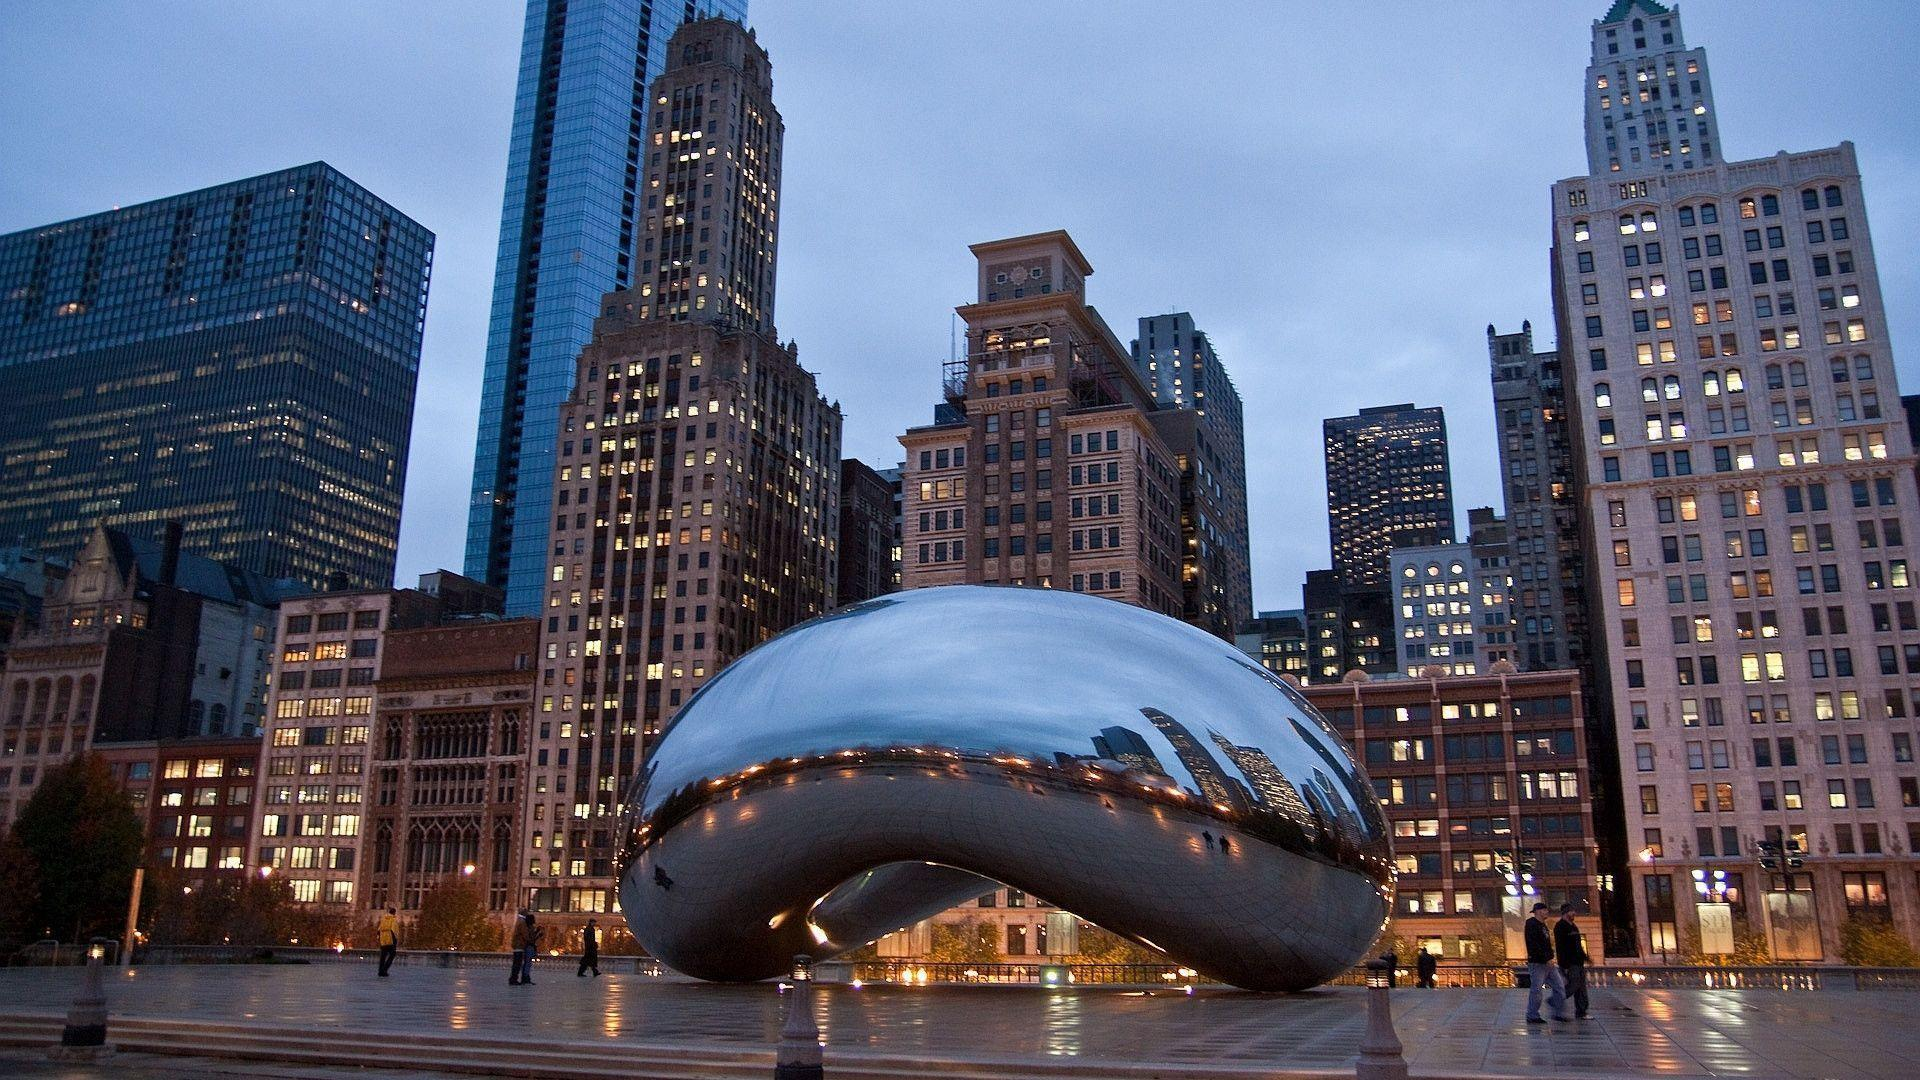 Cloud Gate Chicago Wallpaper 1920x1080PX ~ Wallpaper Chicago #76490